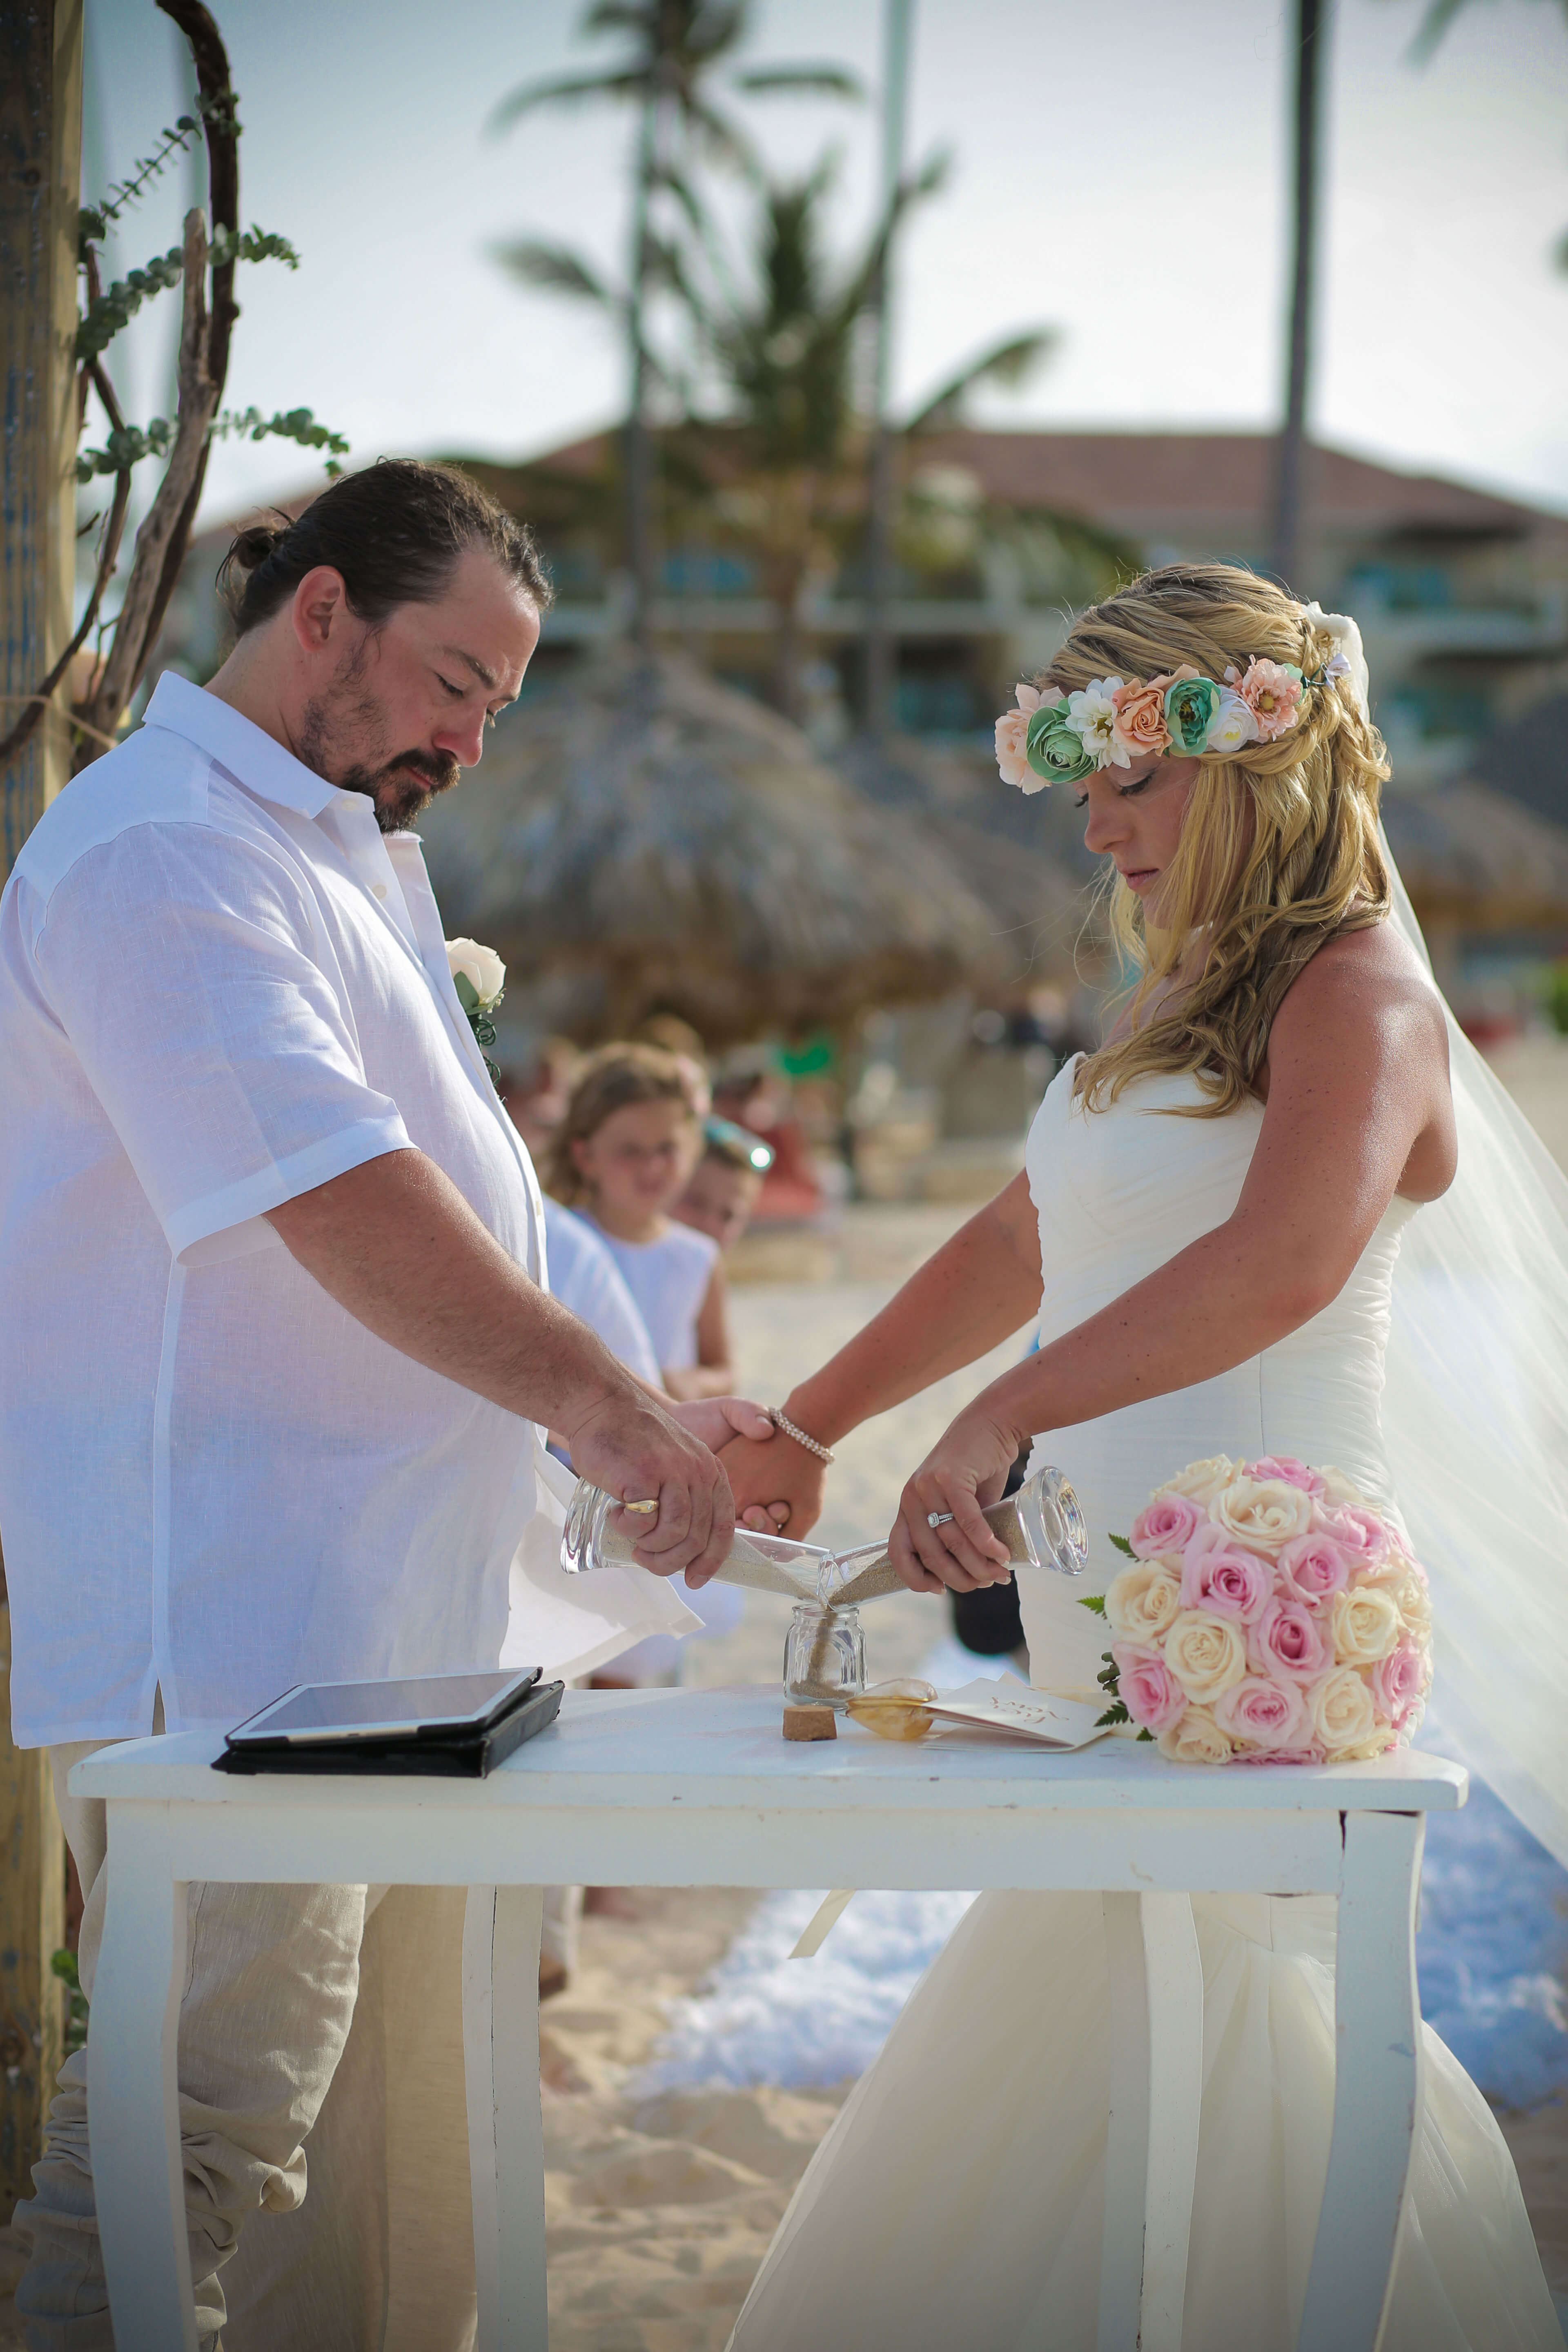 Bride and Groom Pouring Sand in Glass Vessel